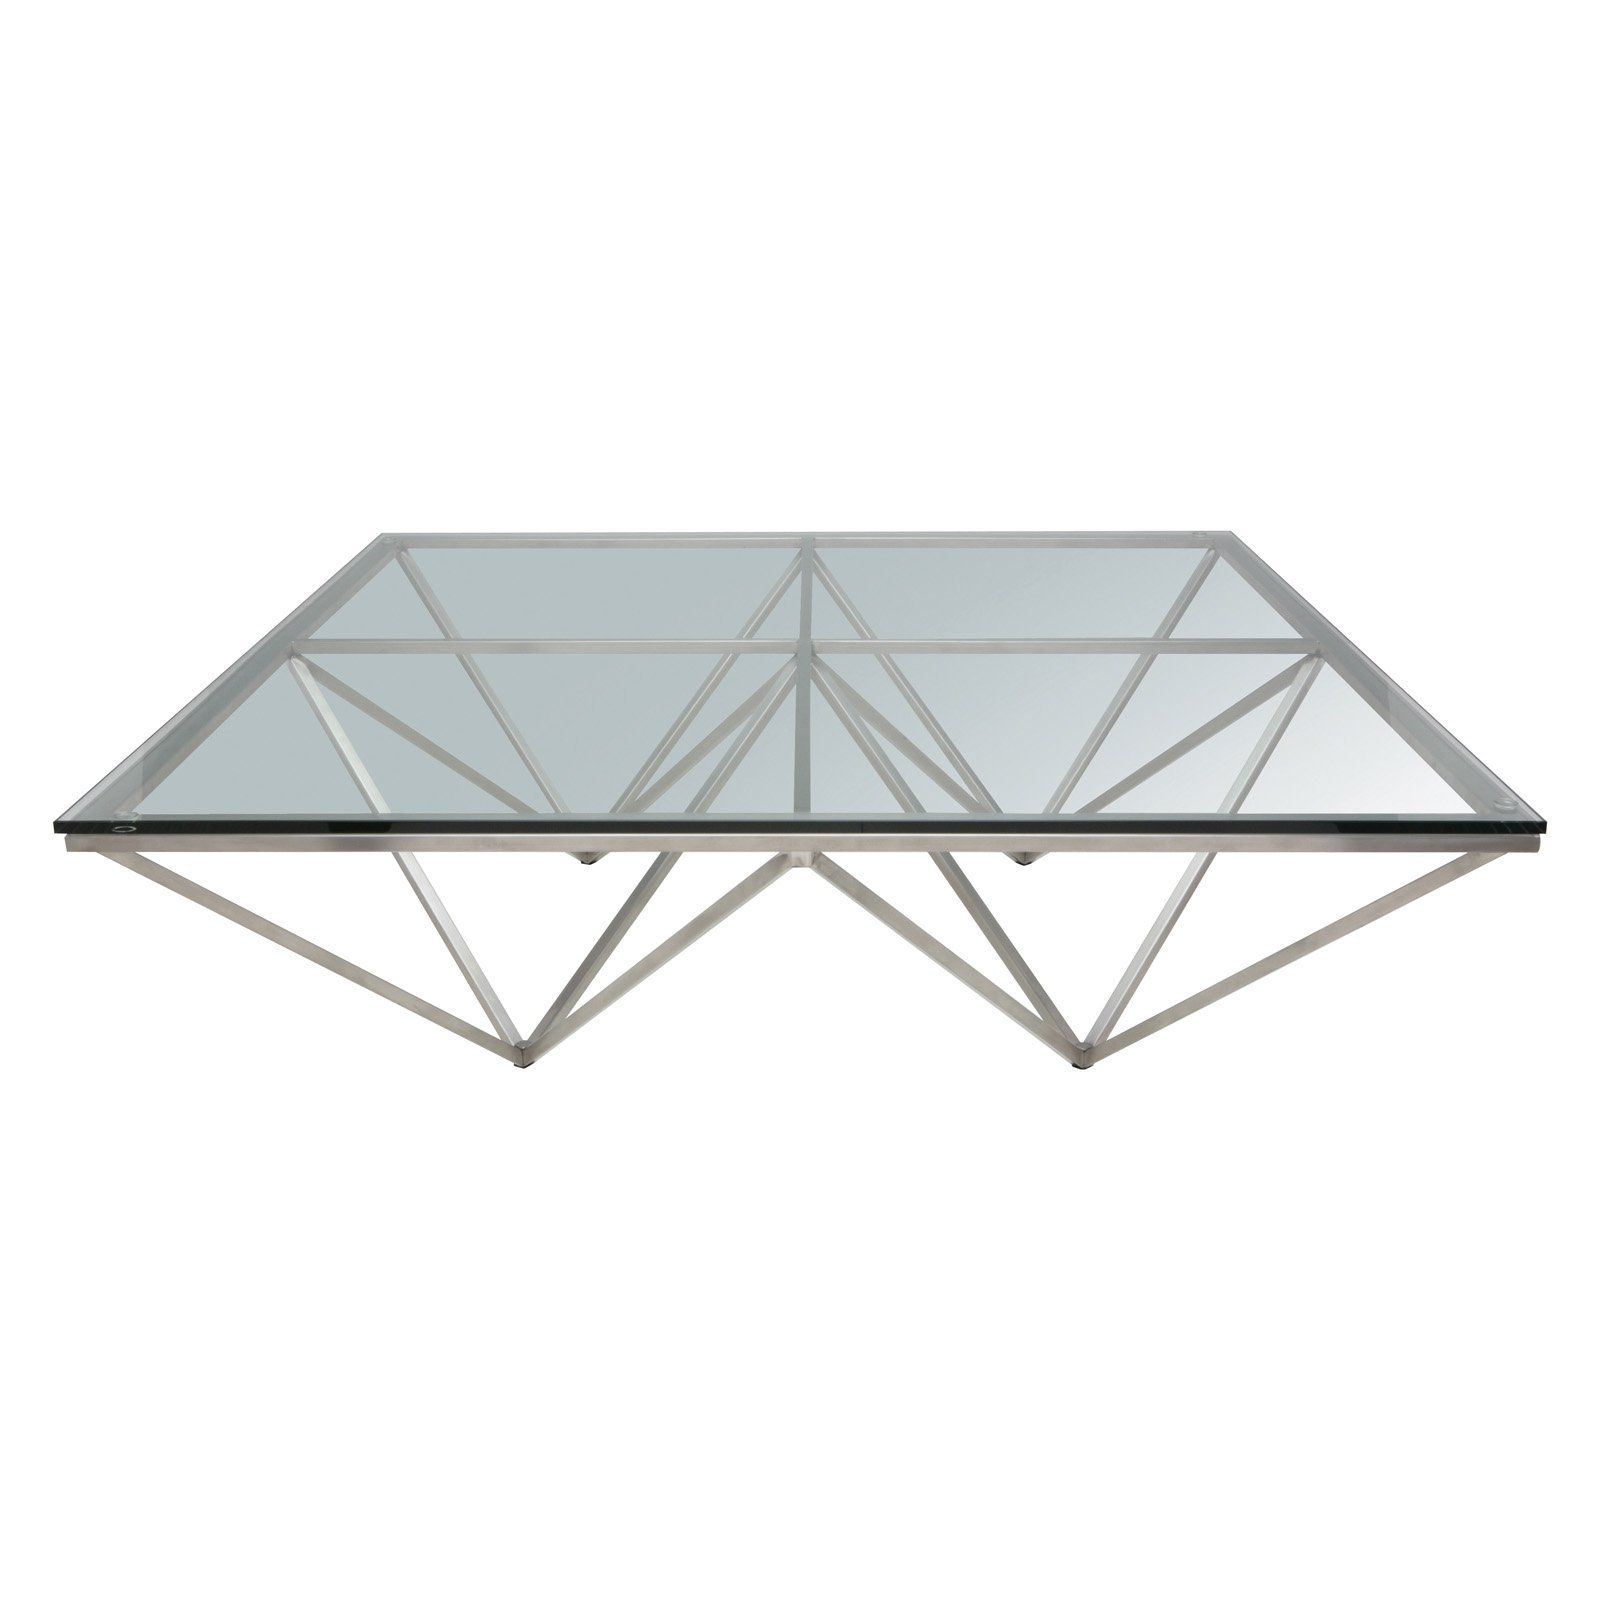 Have To Have It Nuevo Origami Square Coffee Table 680 40 Coffee Table Square Coffee Table Coffee Table Size [ 1600 x 1600 Pixel ]